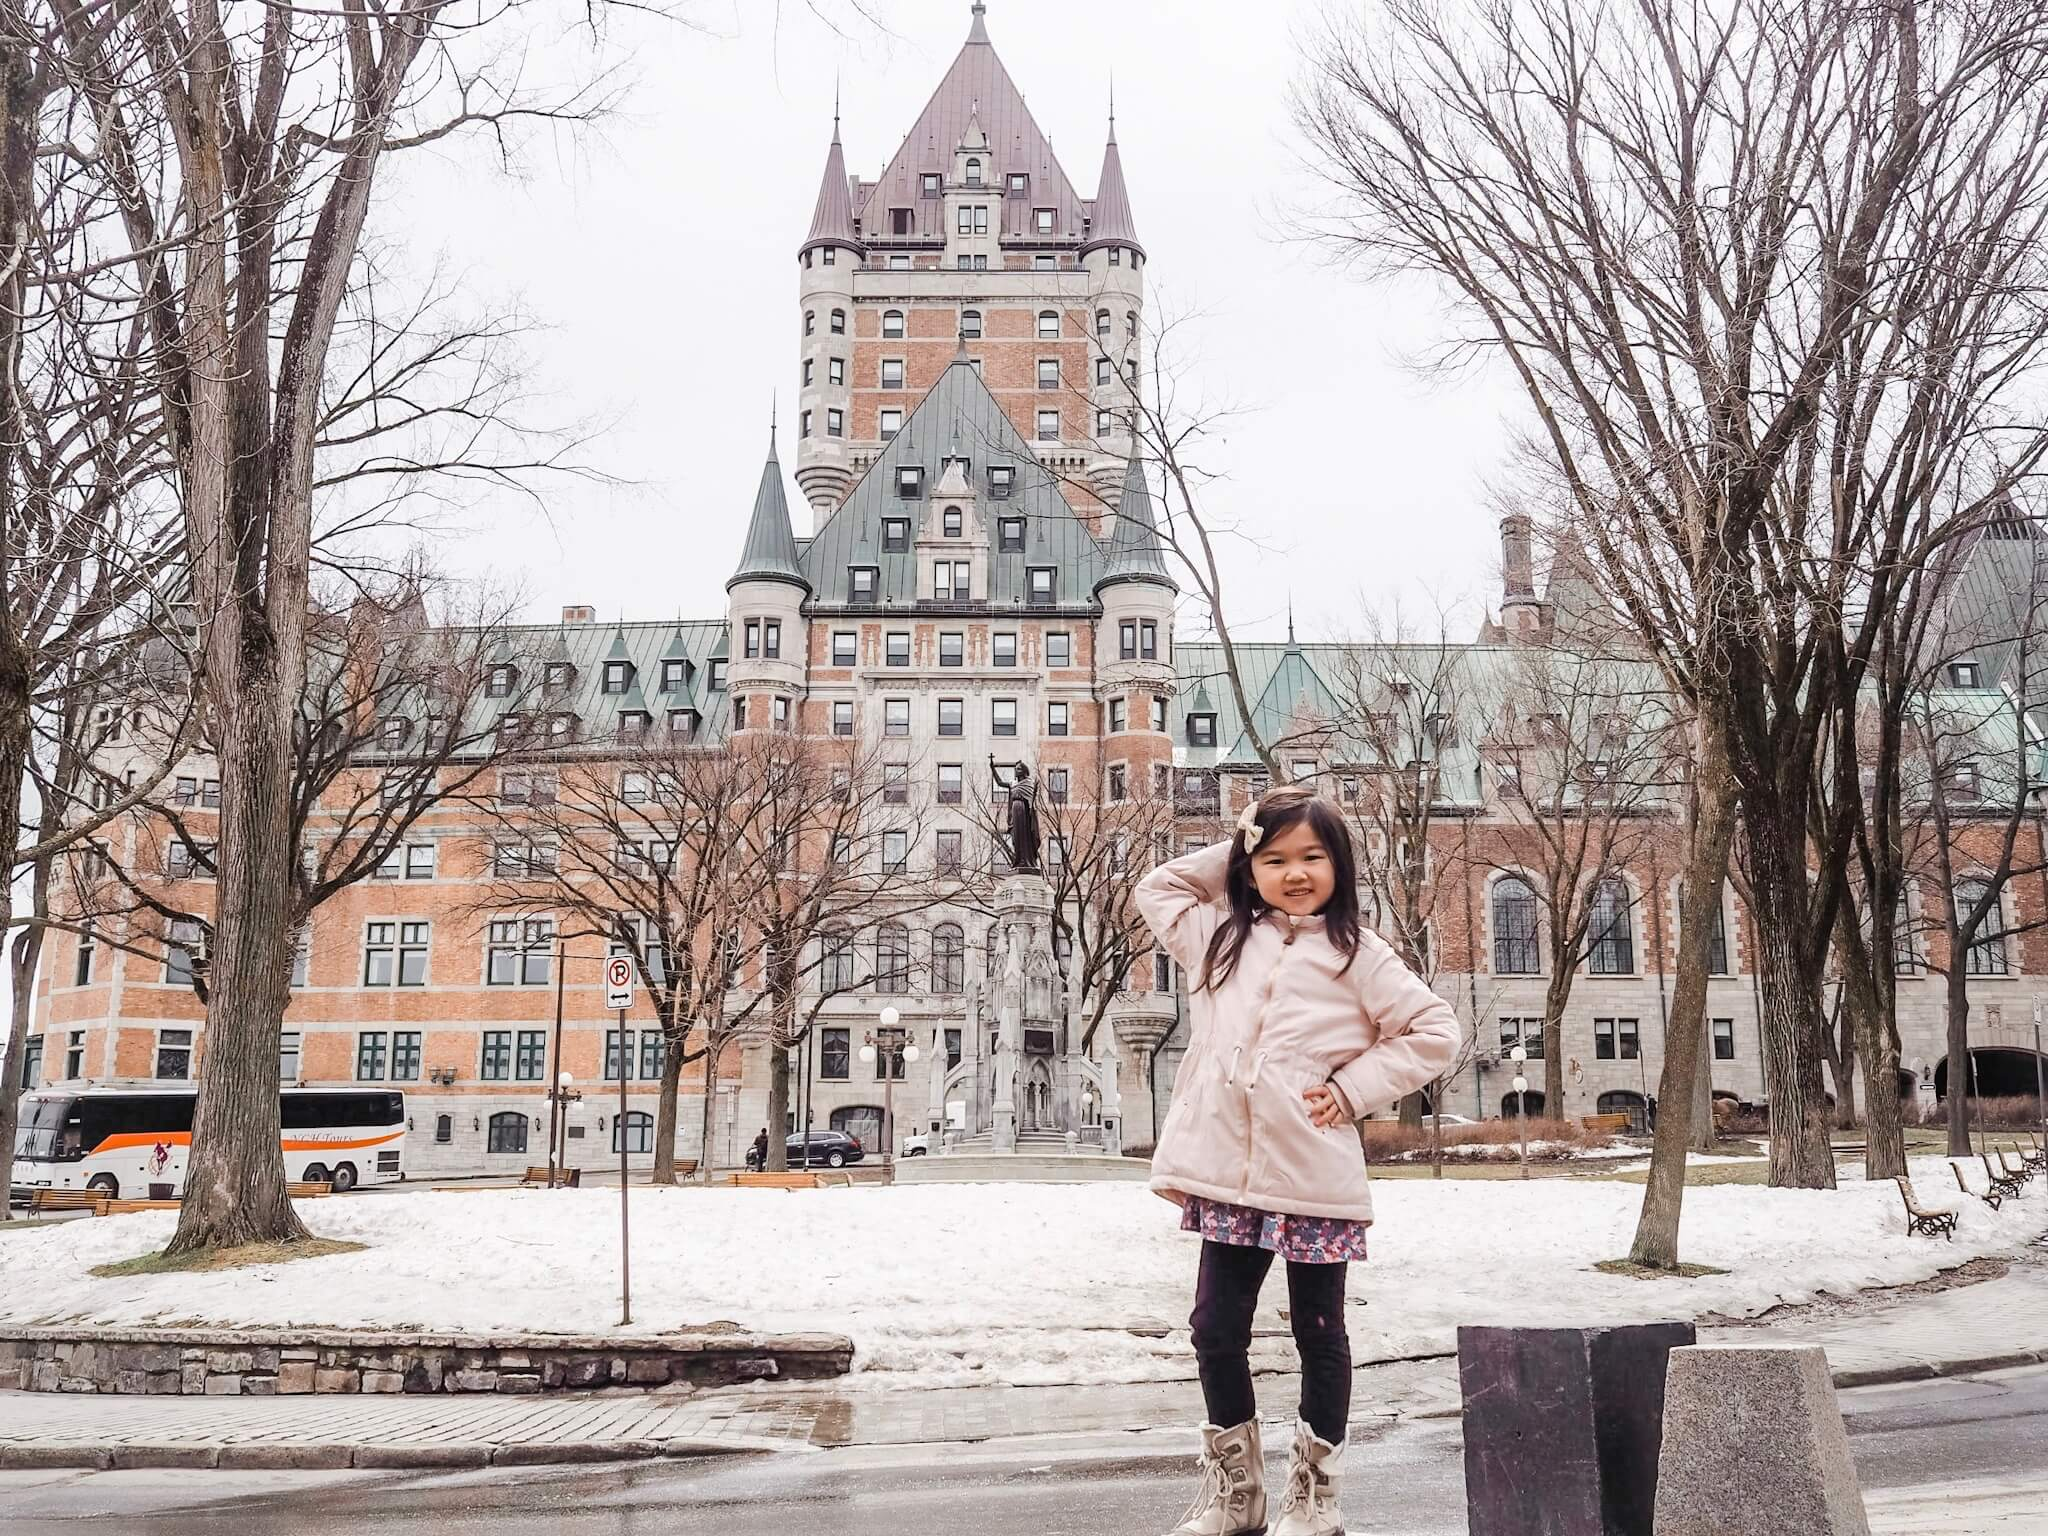 Sophie posing in front of the Fairmont Le Chateau Frontenac - Quebec City, Canada